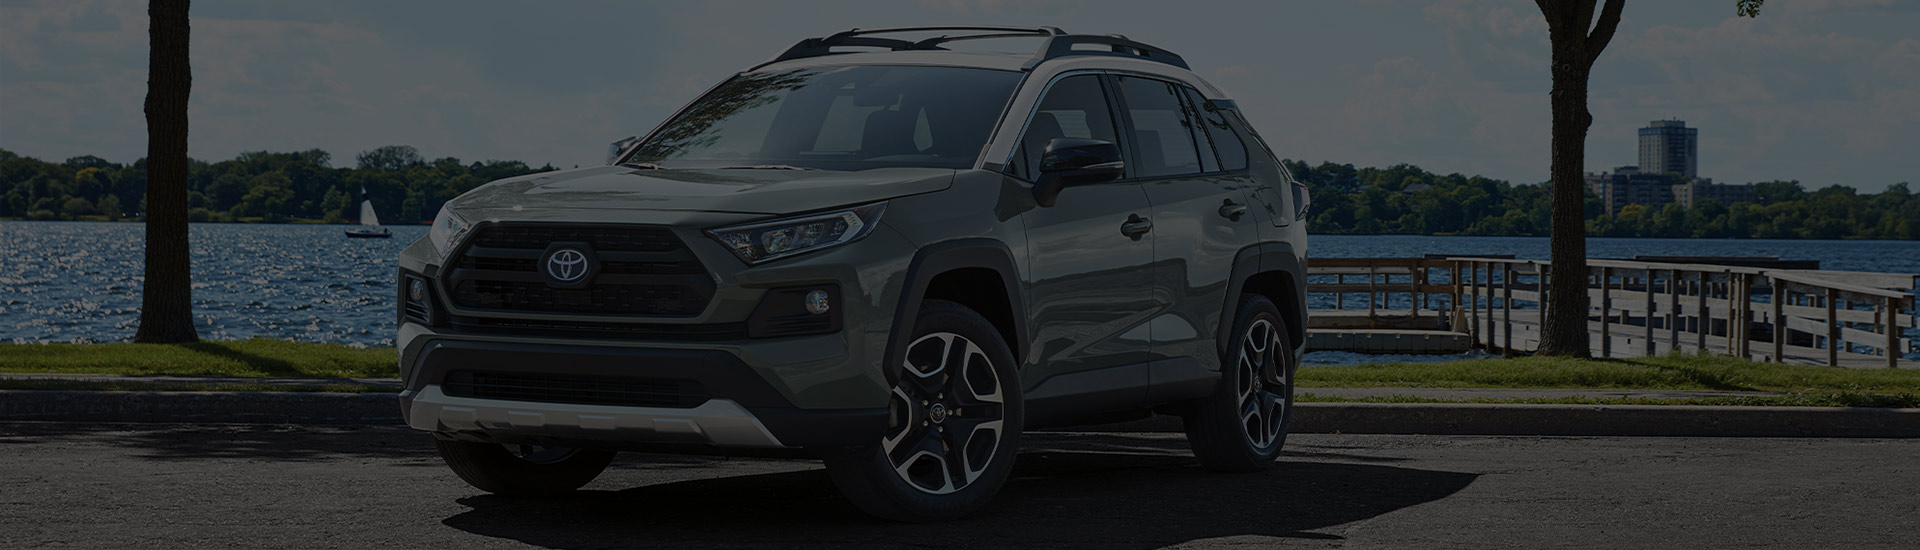 The 2019 Toyota RAV4 Is Available At Rivertown Toyota In Columbus, GA